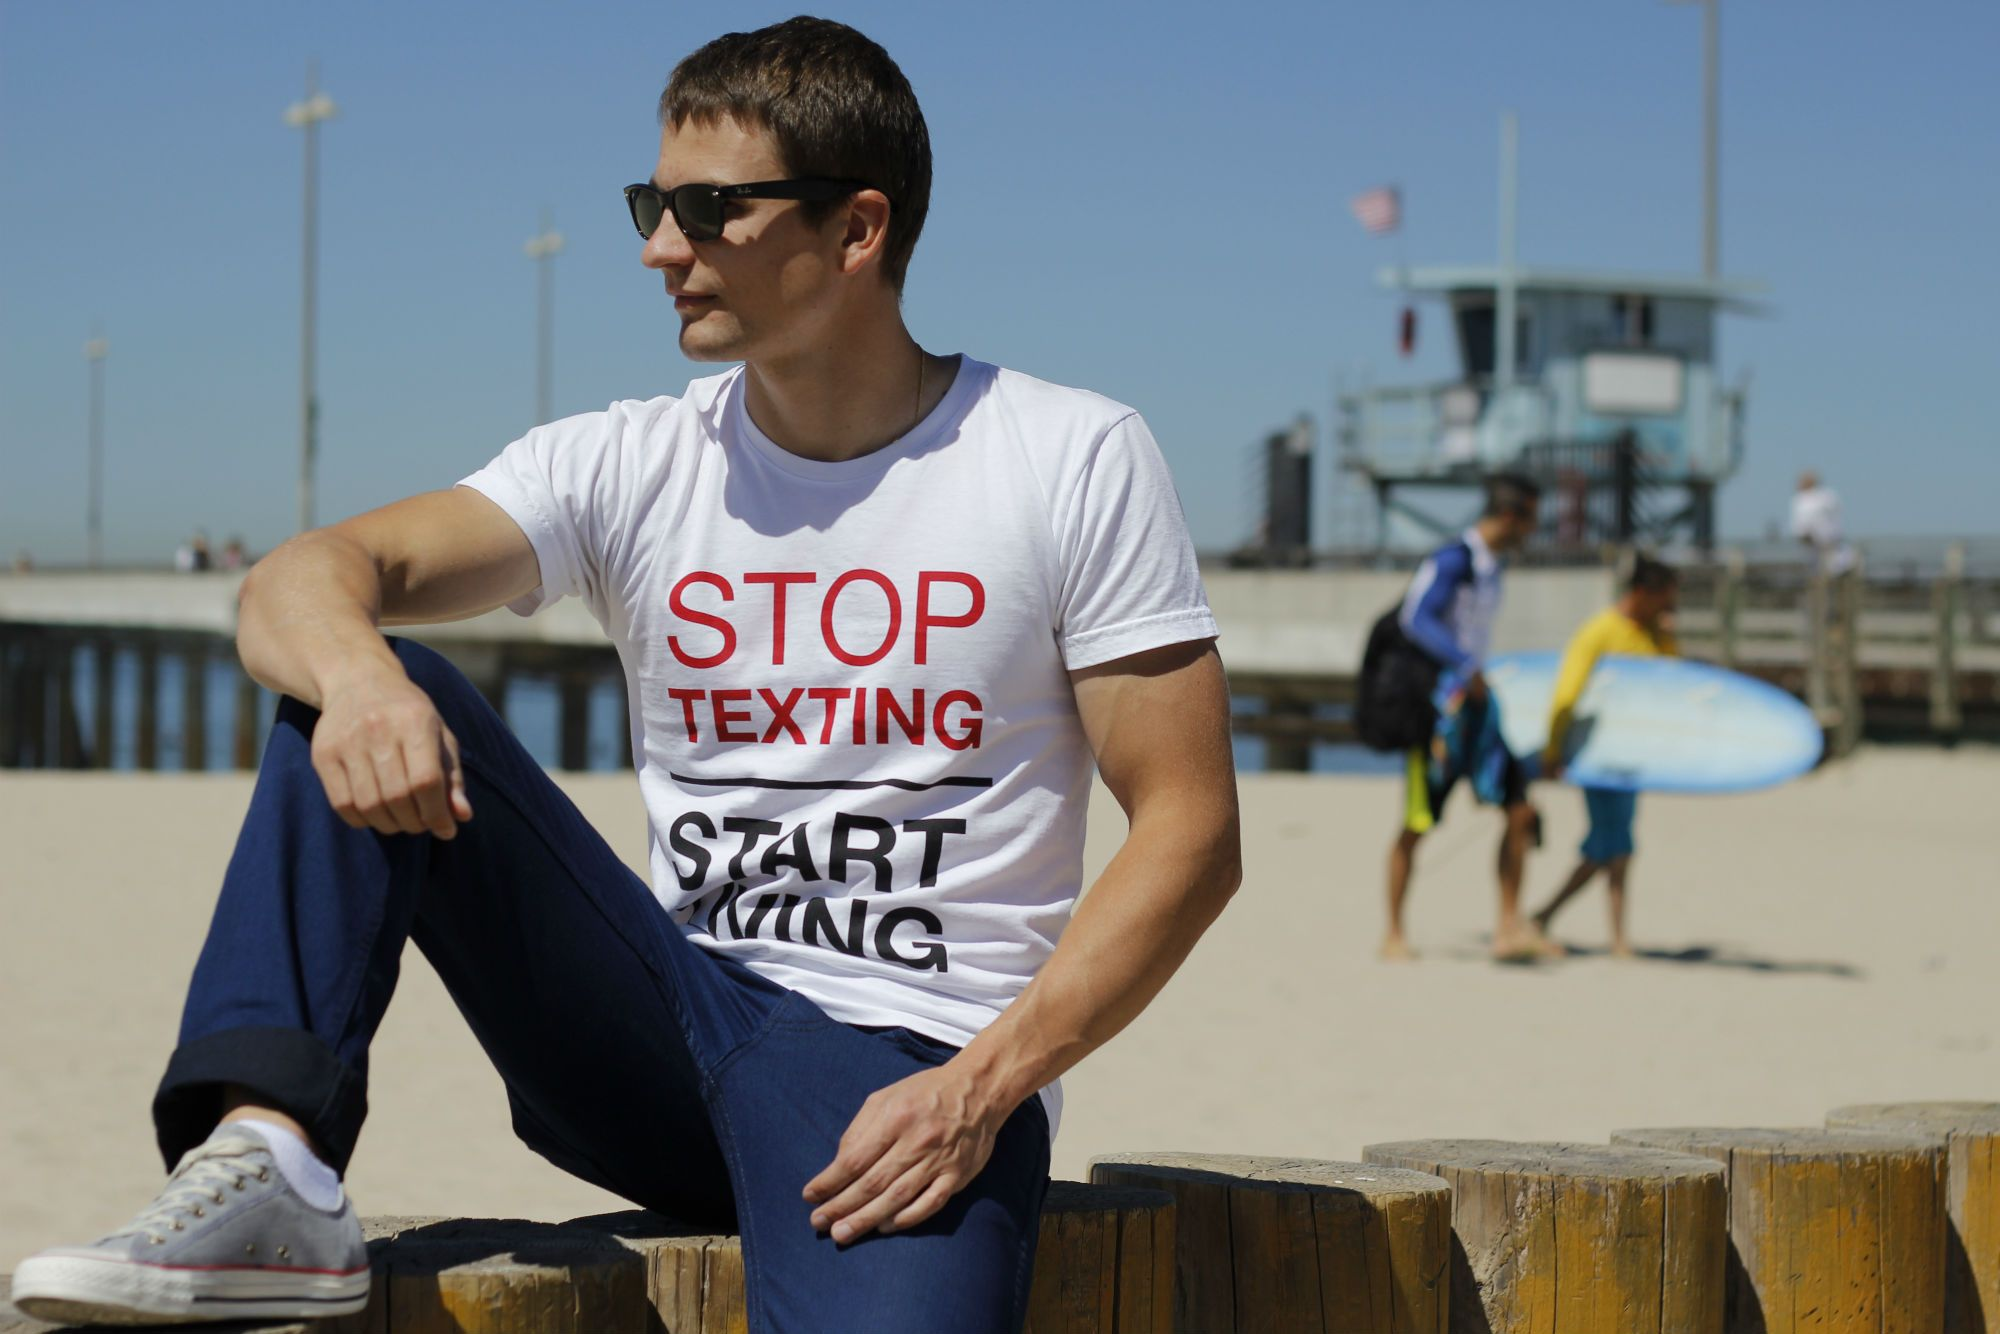 Tshirt that completes you. Available on http://okstyledesign.com/ #tee #tshirt #beach #ocean #lookbook #mensfashion #fashion #style